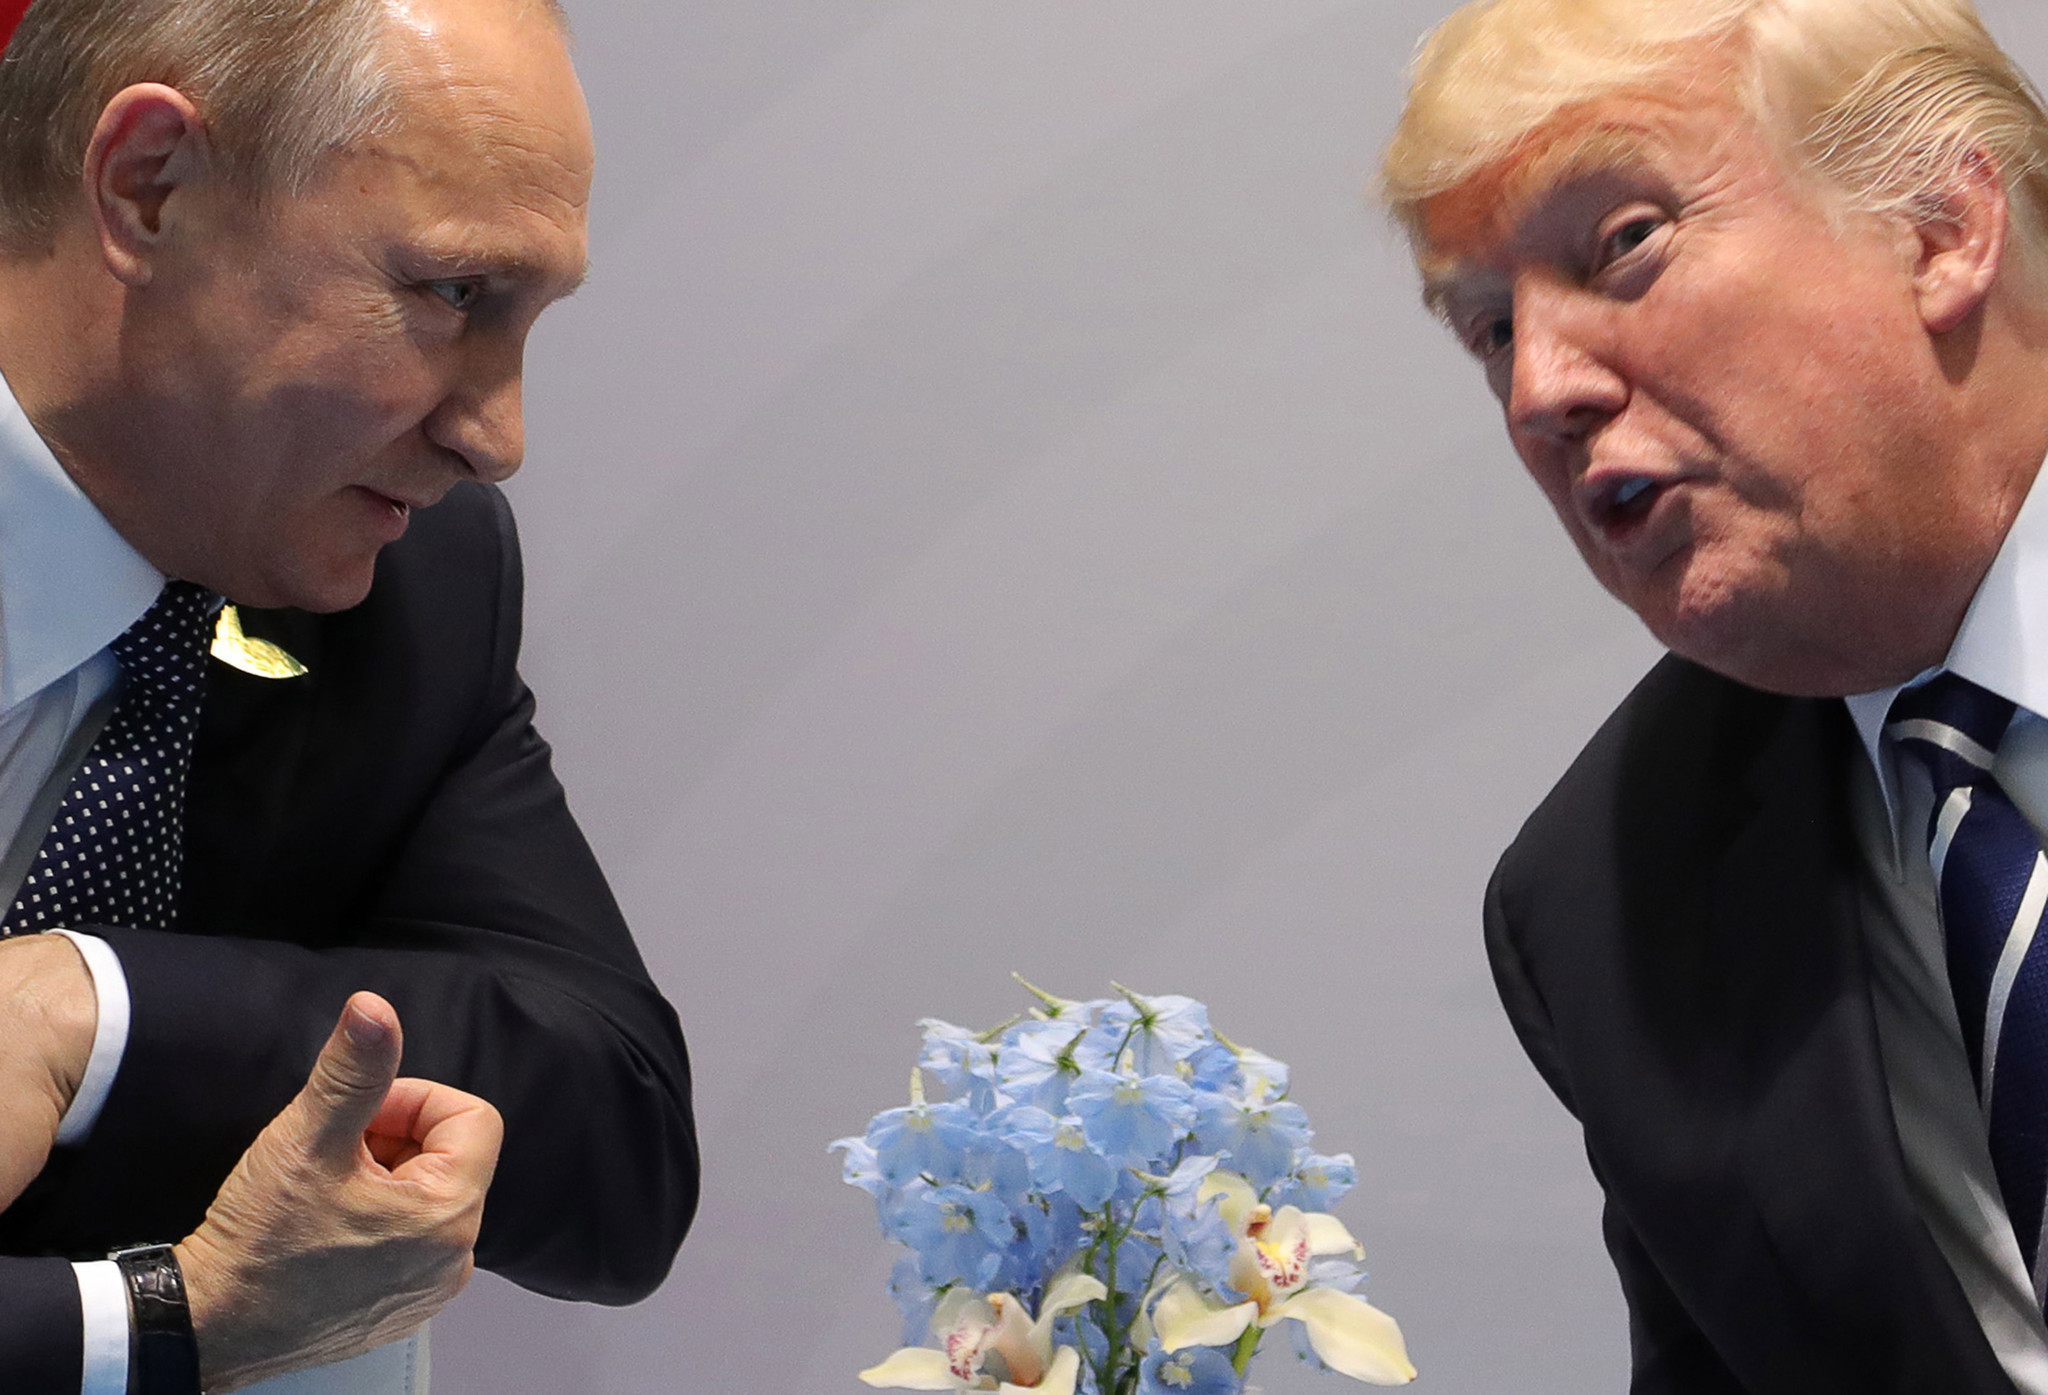 Vladimir Putin charms another US president